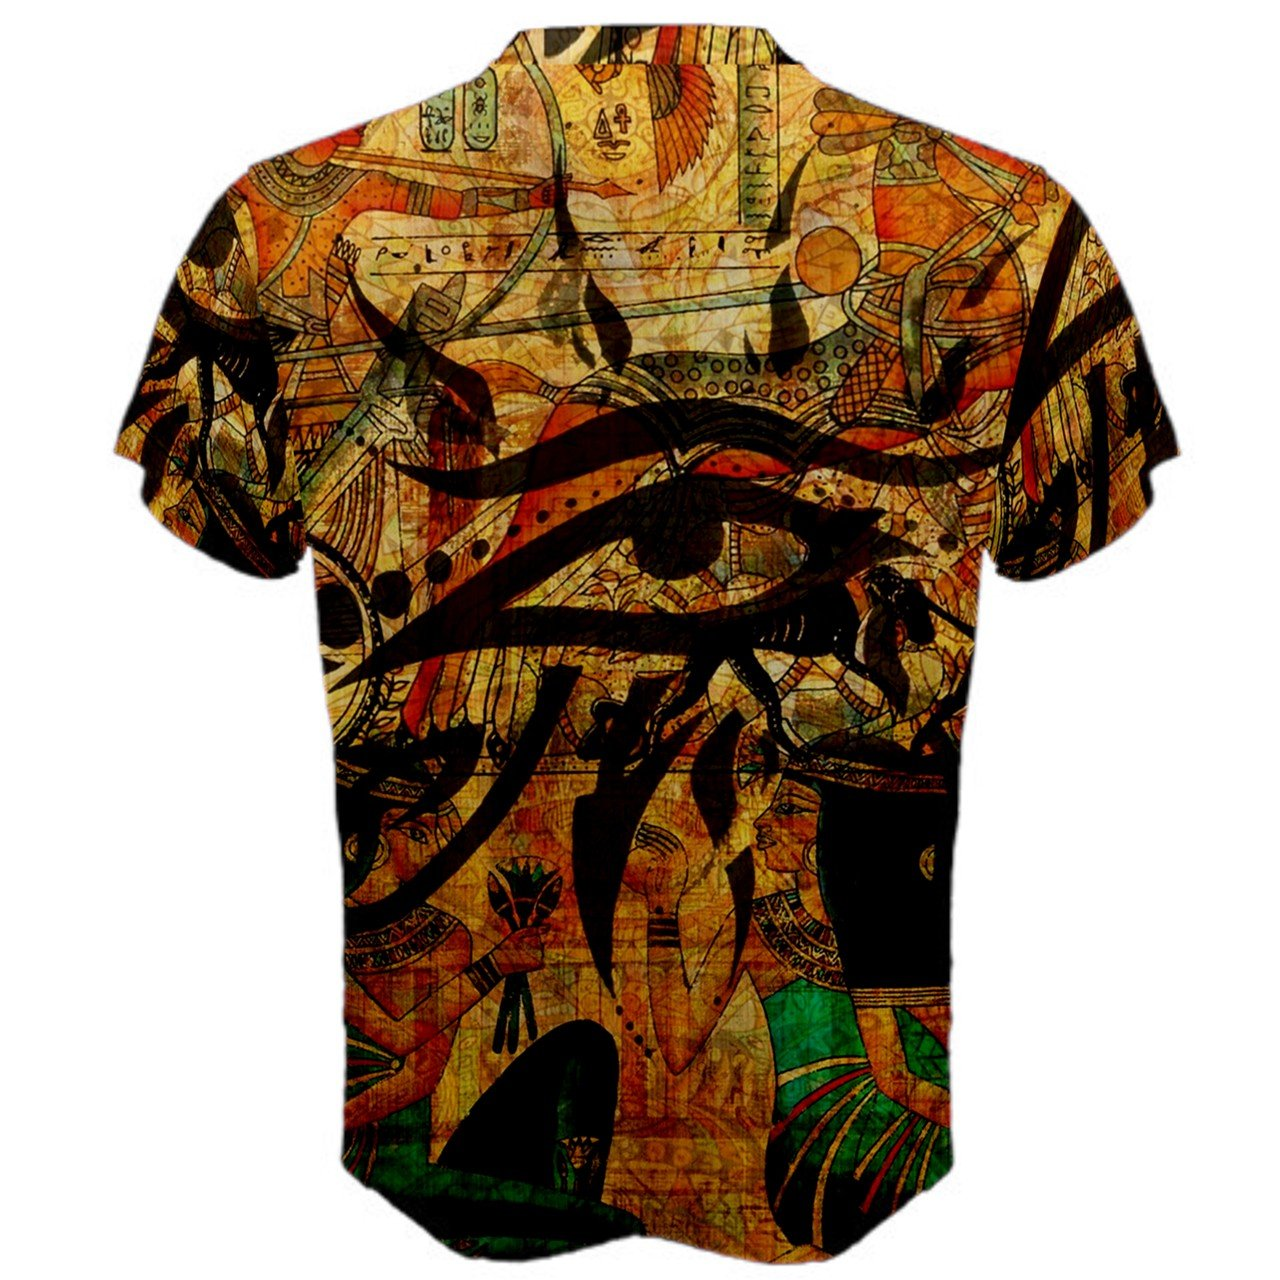 b17256e60 Make Your Own T Shirts Uk Cheap – EDGE Engineering and Consulting ...